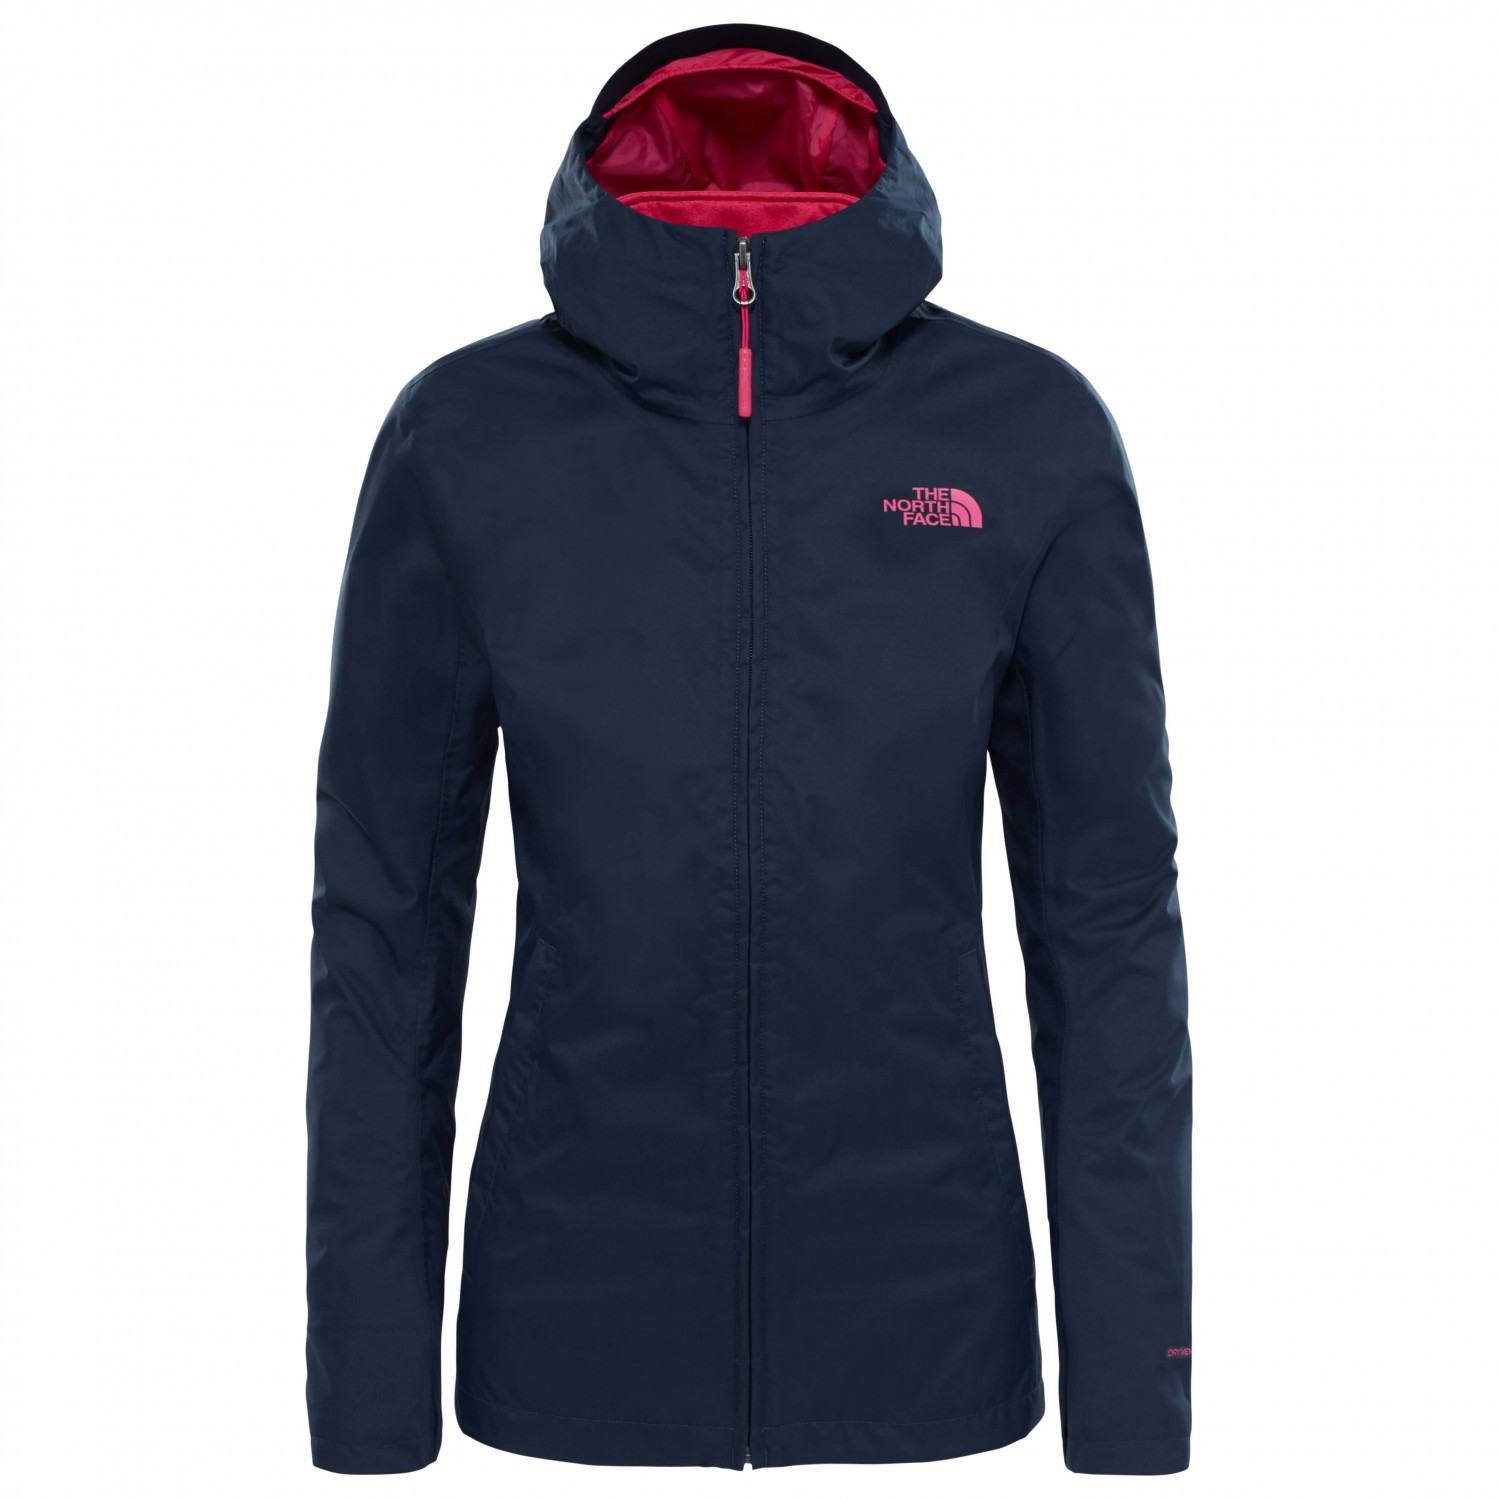 Gratis The Verzending Triclimate Face North Jacket Dames Tanken wxaAqRp1Yx